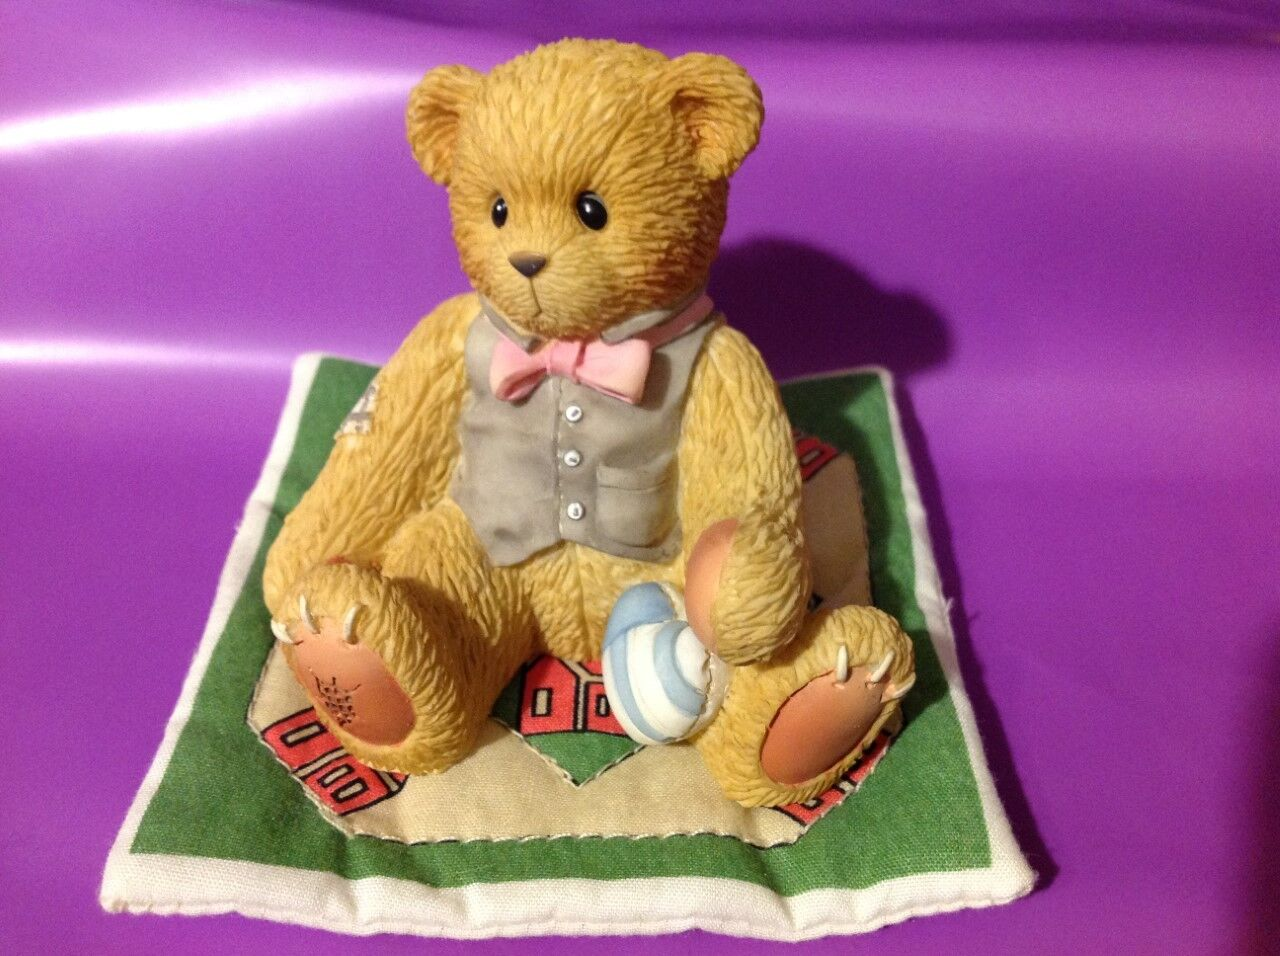 CHERISHED TEDDIES 2000 FIGURINE, GROOM, BRADFORD EXCLUSIVE, HTF, 74116, NIB